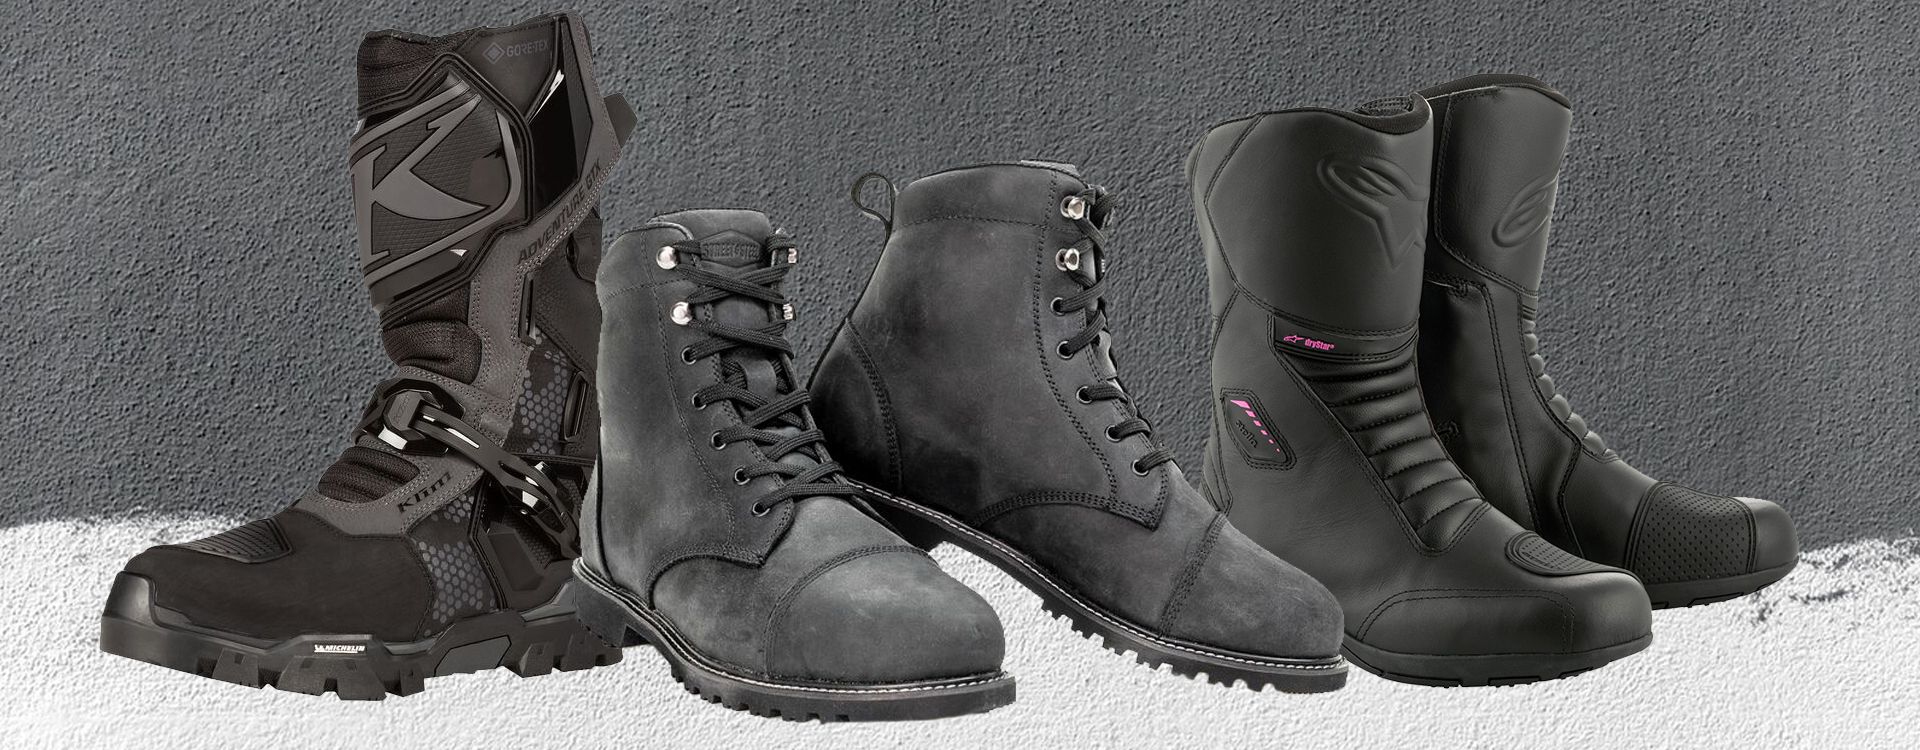 Best Leather Motorcycle Boots